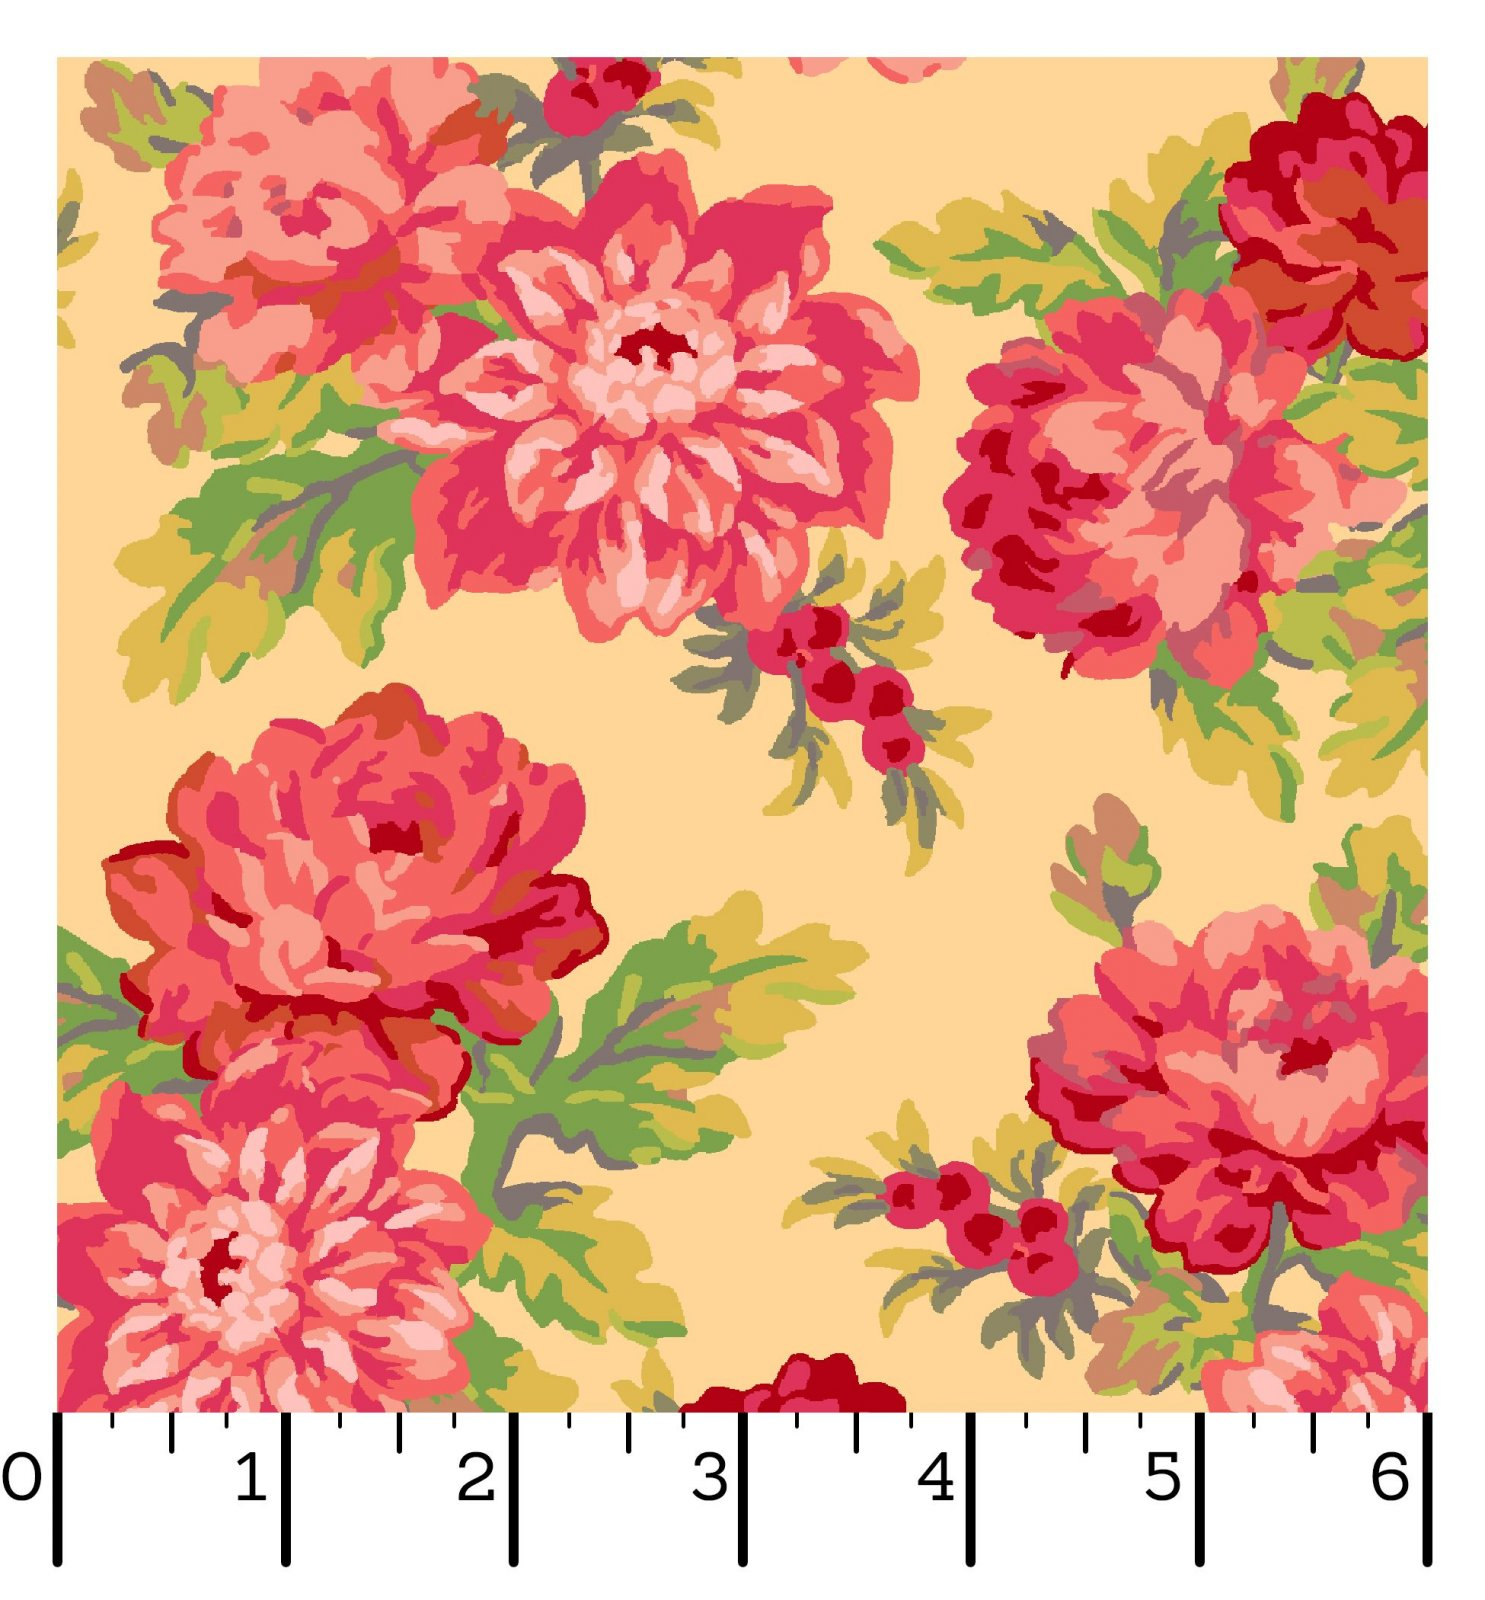 EESC-10010 S - SWEET BEGINNINGS BY JERA BRANDVIG FOCAL FLORAL YELLOW - ARRIVING IN JUNE 2021